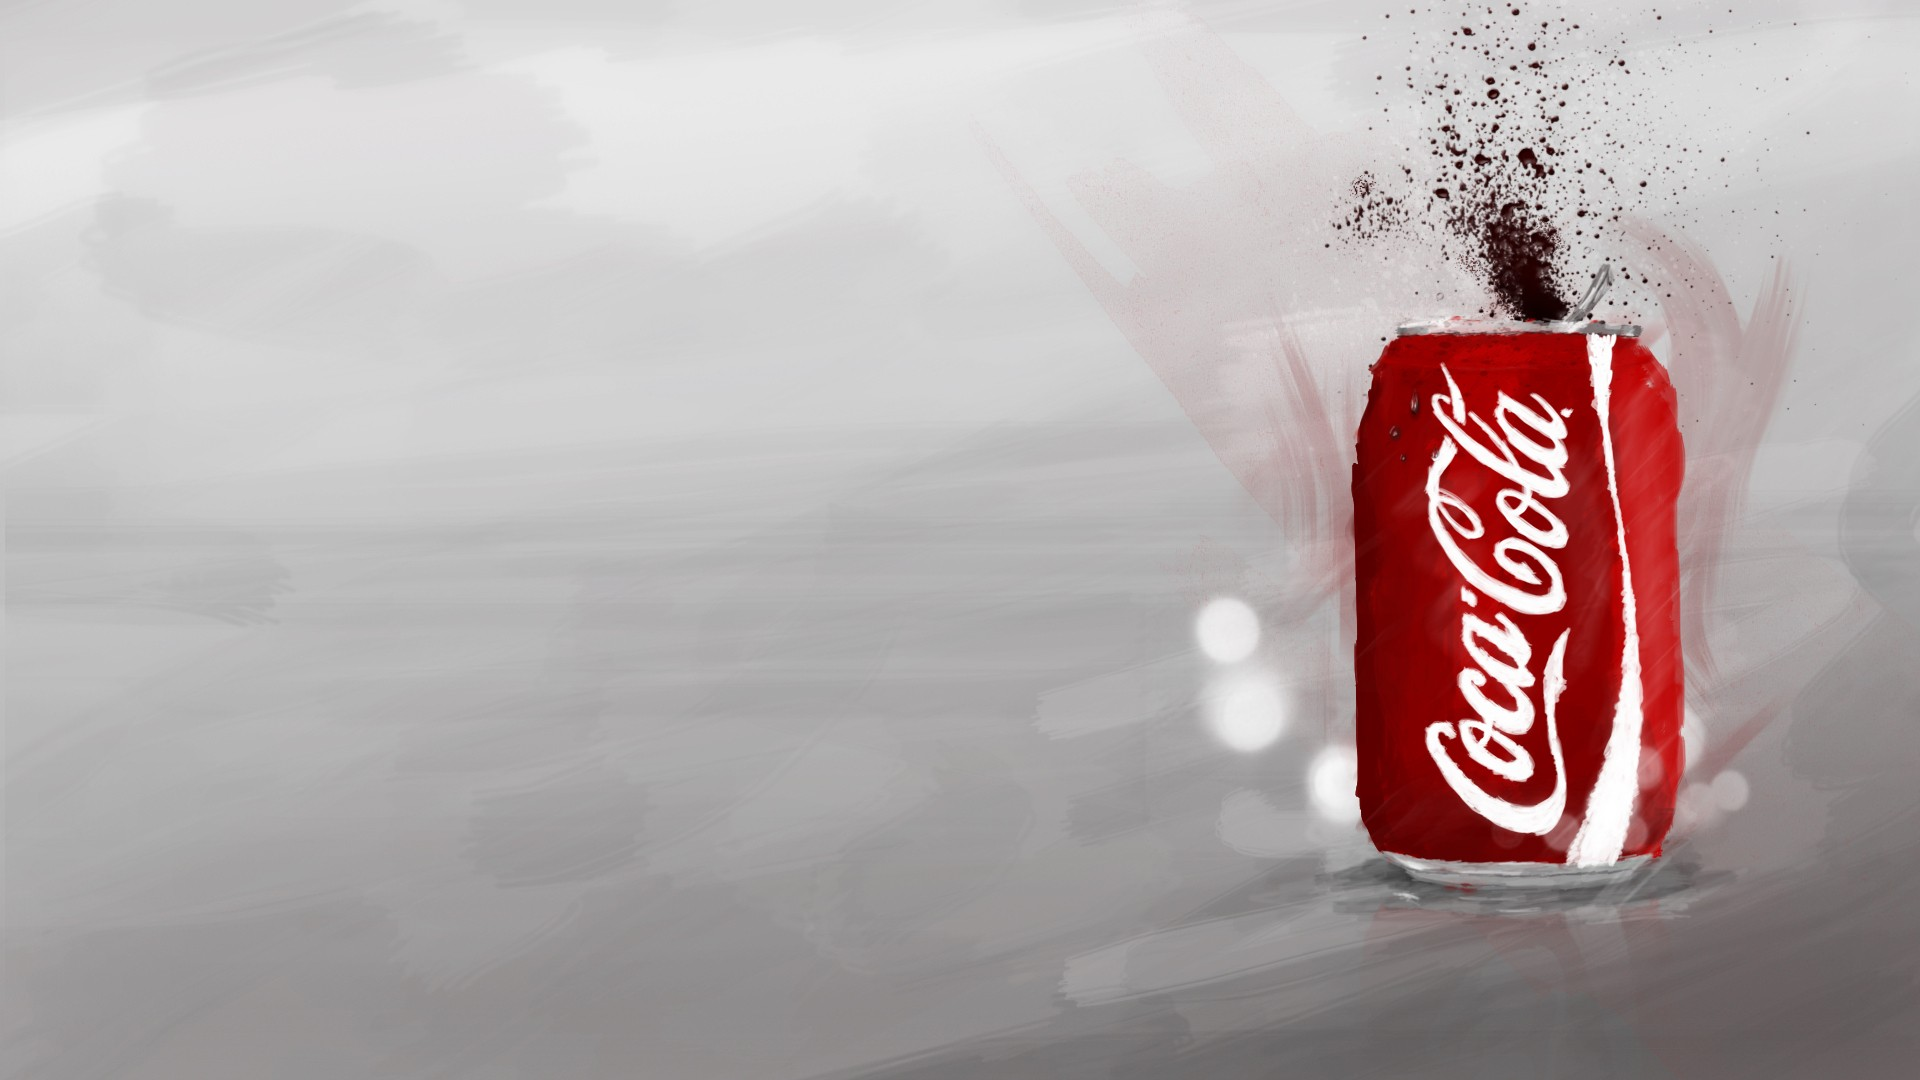 coca cola wallpaper | 1920x1080 | #69277, Modern powerpoint